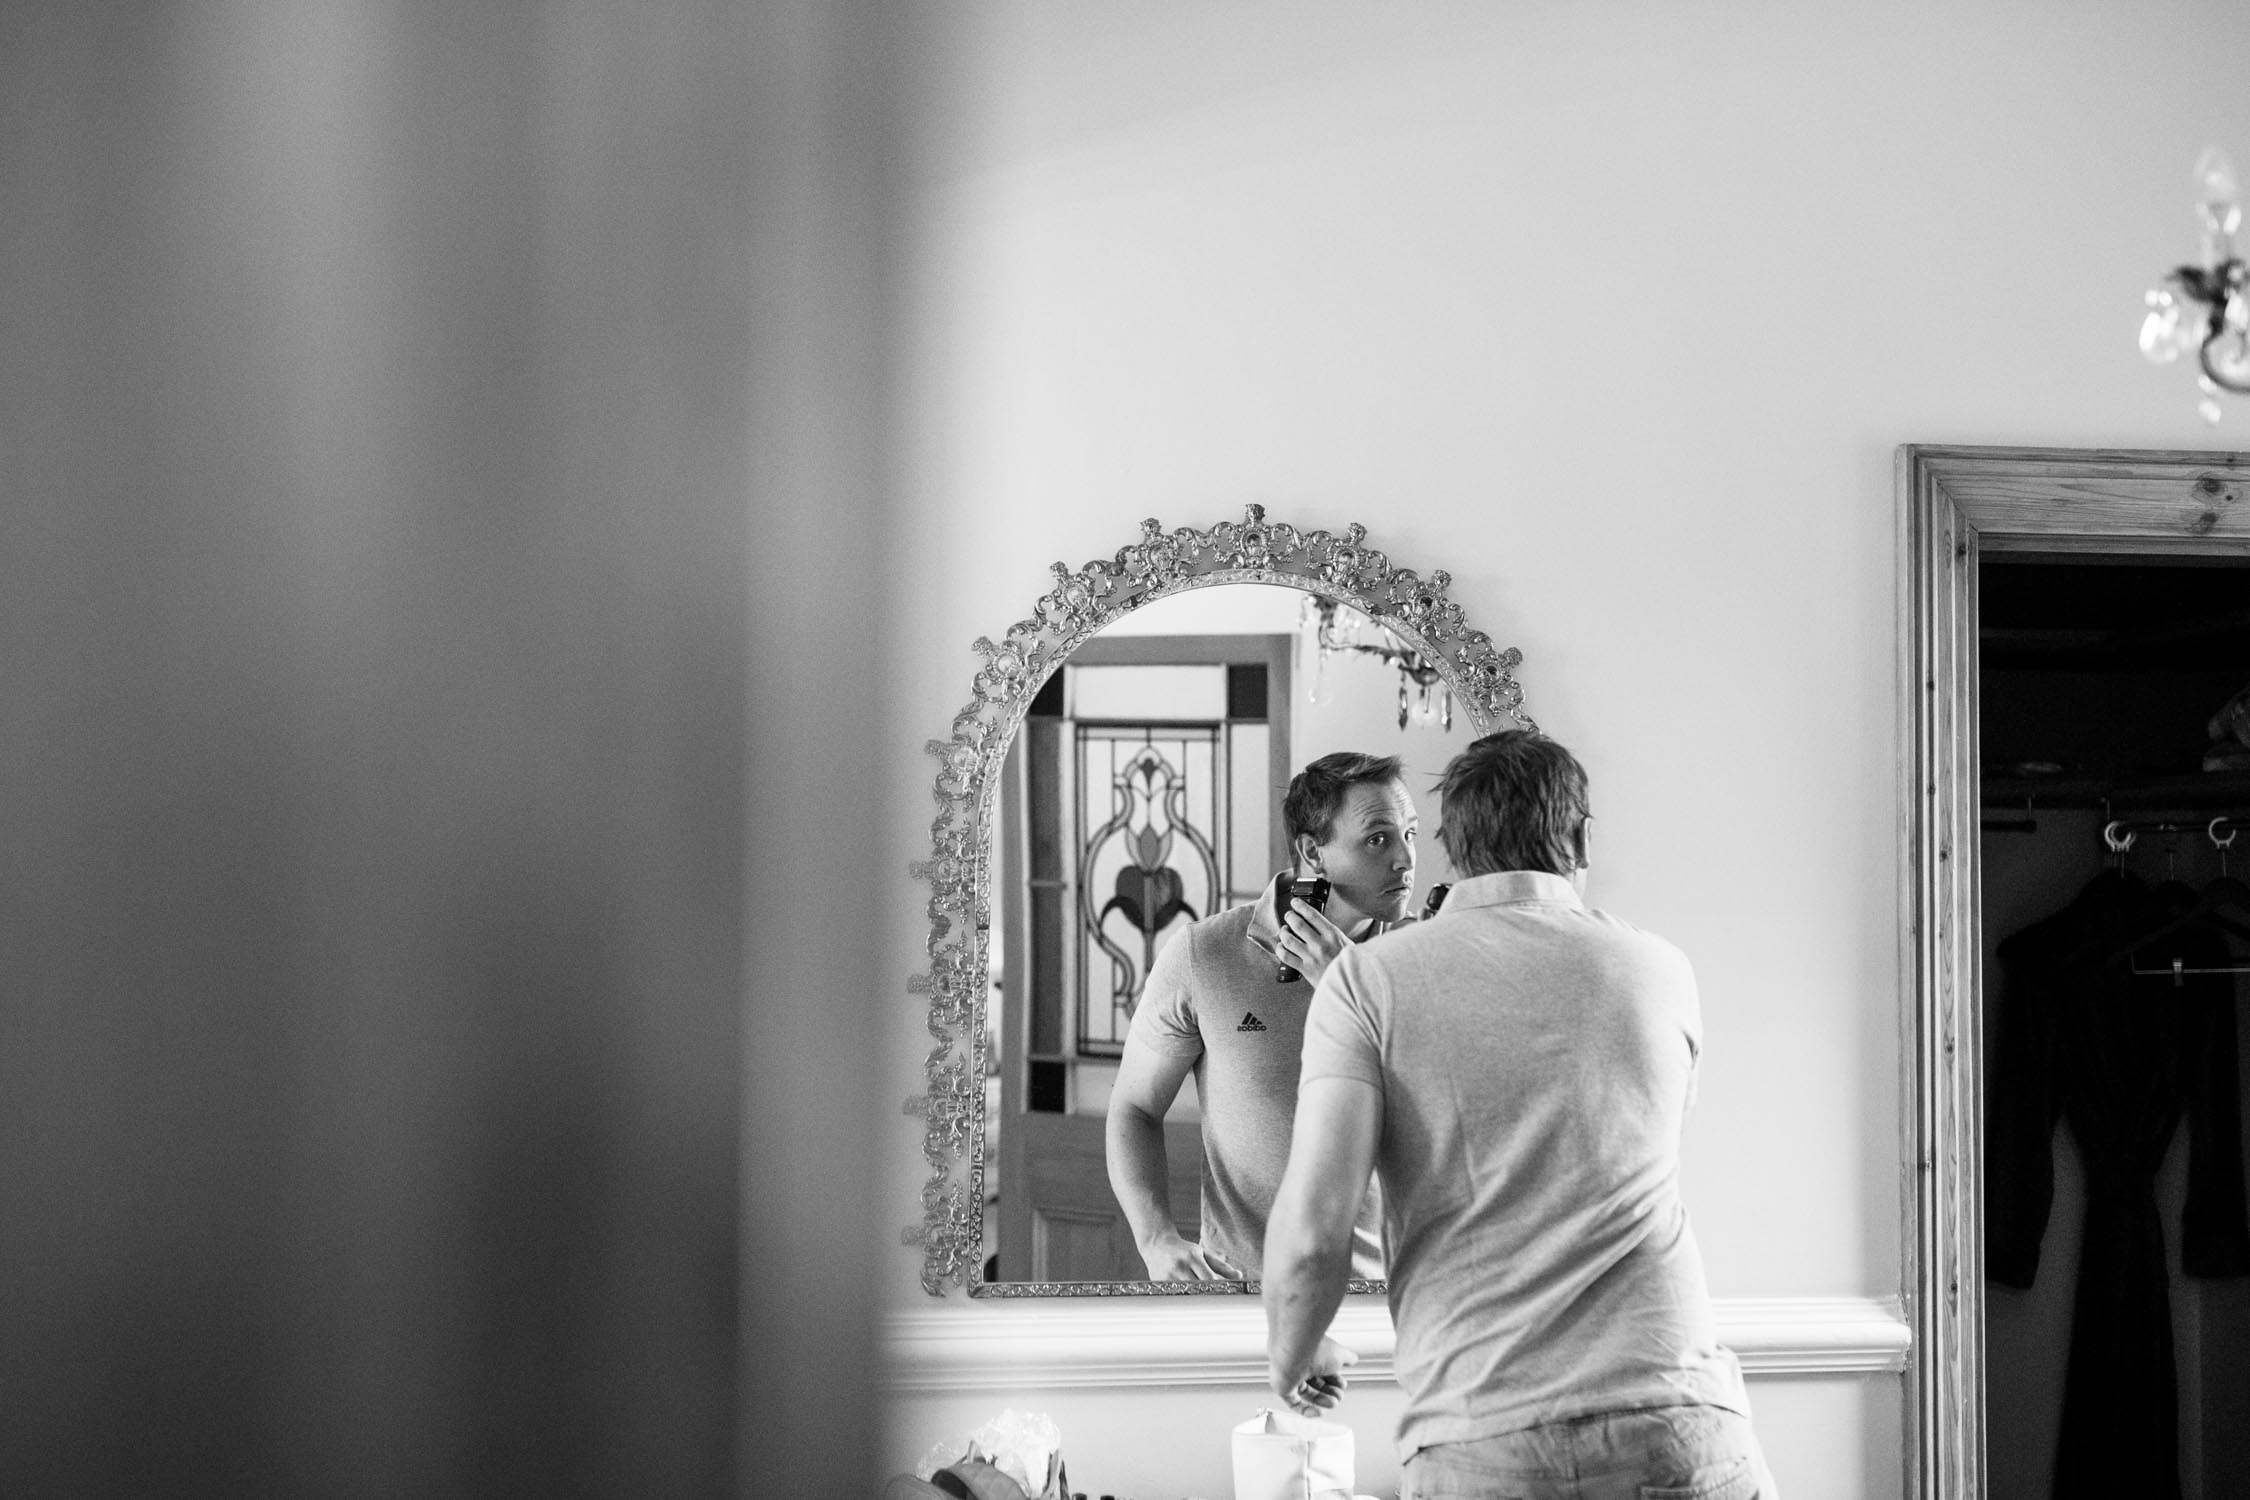 Natural documentary photograph of groomsman shaving with his reflection in a mirror